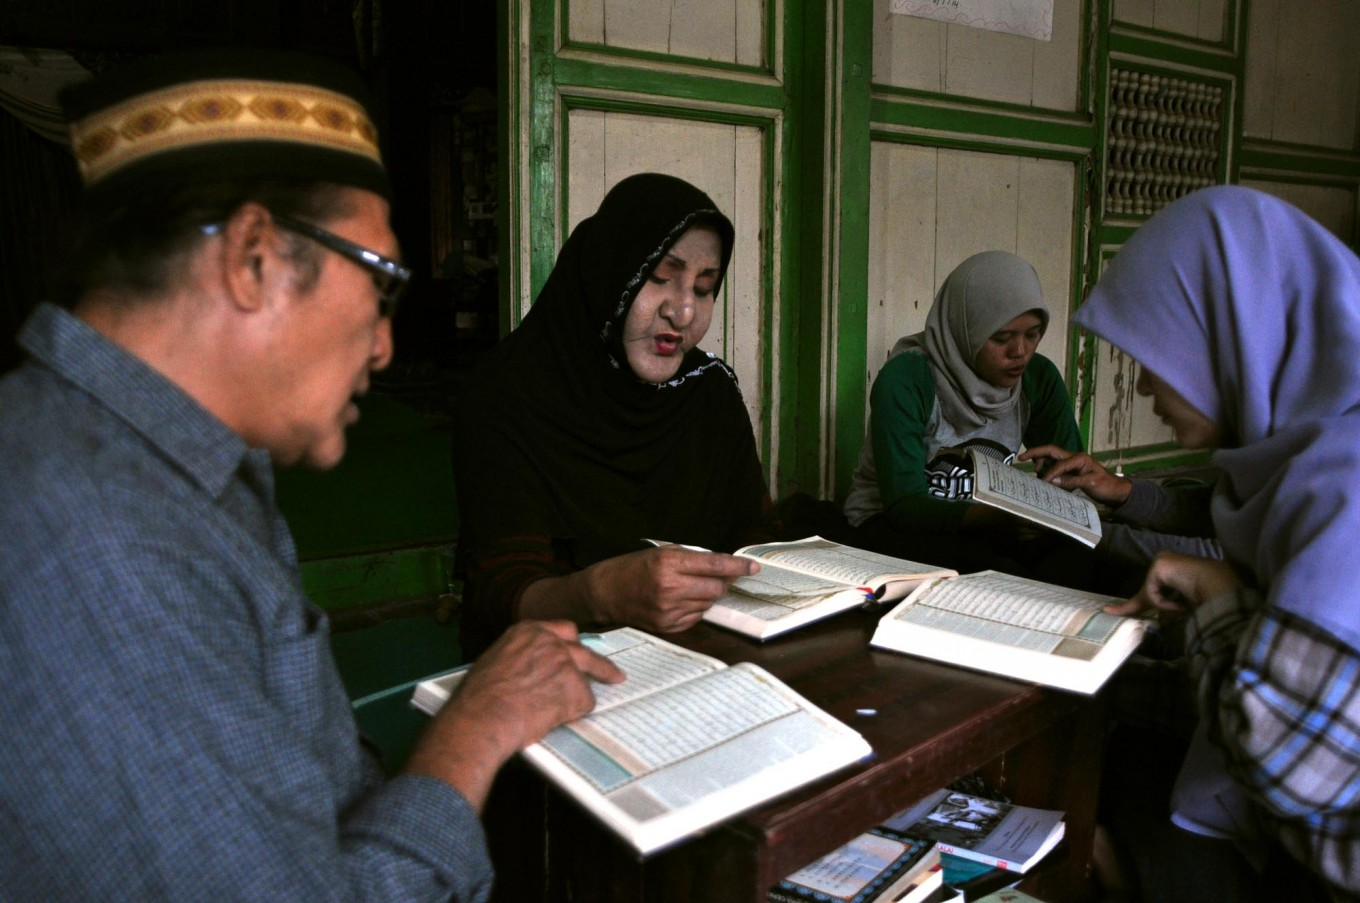 Shinta Ratri, 55, the leader of Al Fatah Islamic boarding school, recites verse Al Hud 71-88 of the Quran. There are 46 transgender students in the boarding school but only 26 students are active during the Ramadhan fasting month. JP/Magnus Hendratmo